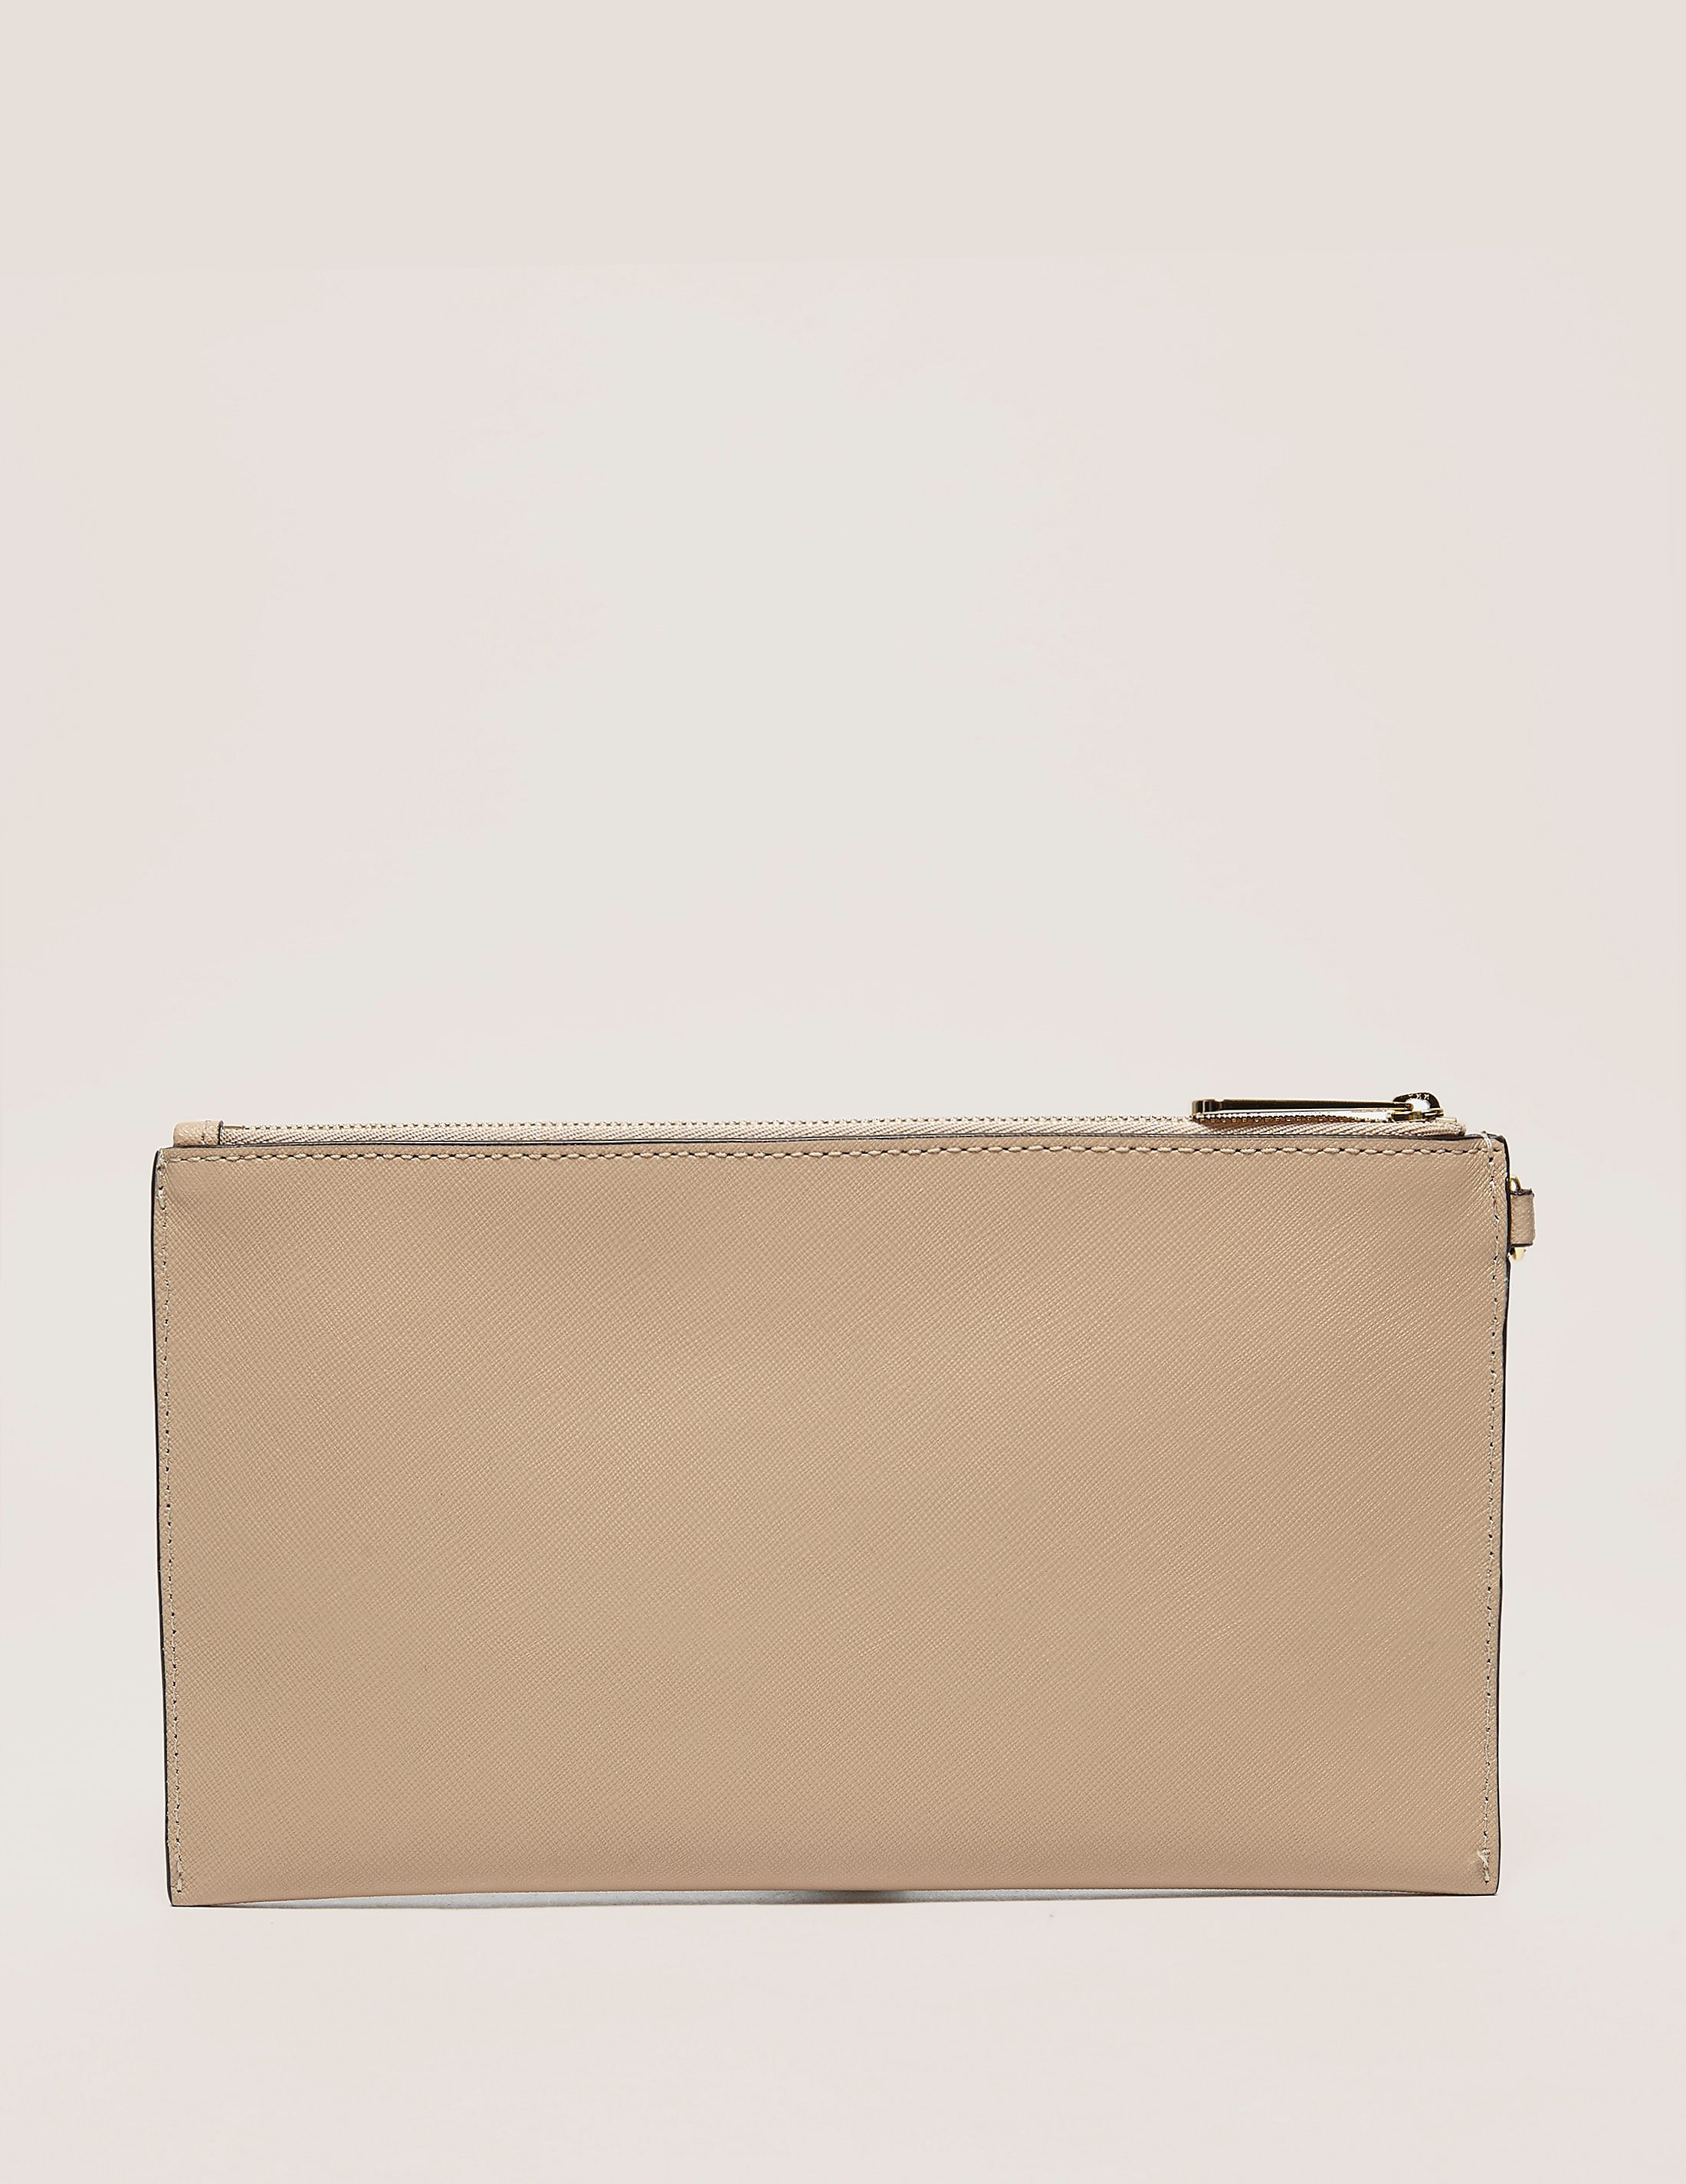 Michael Kors Jet Set Travel Zip Clutch